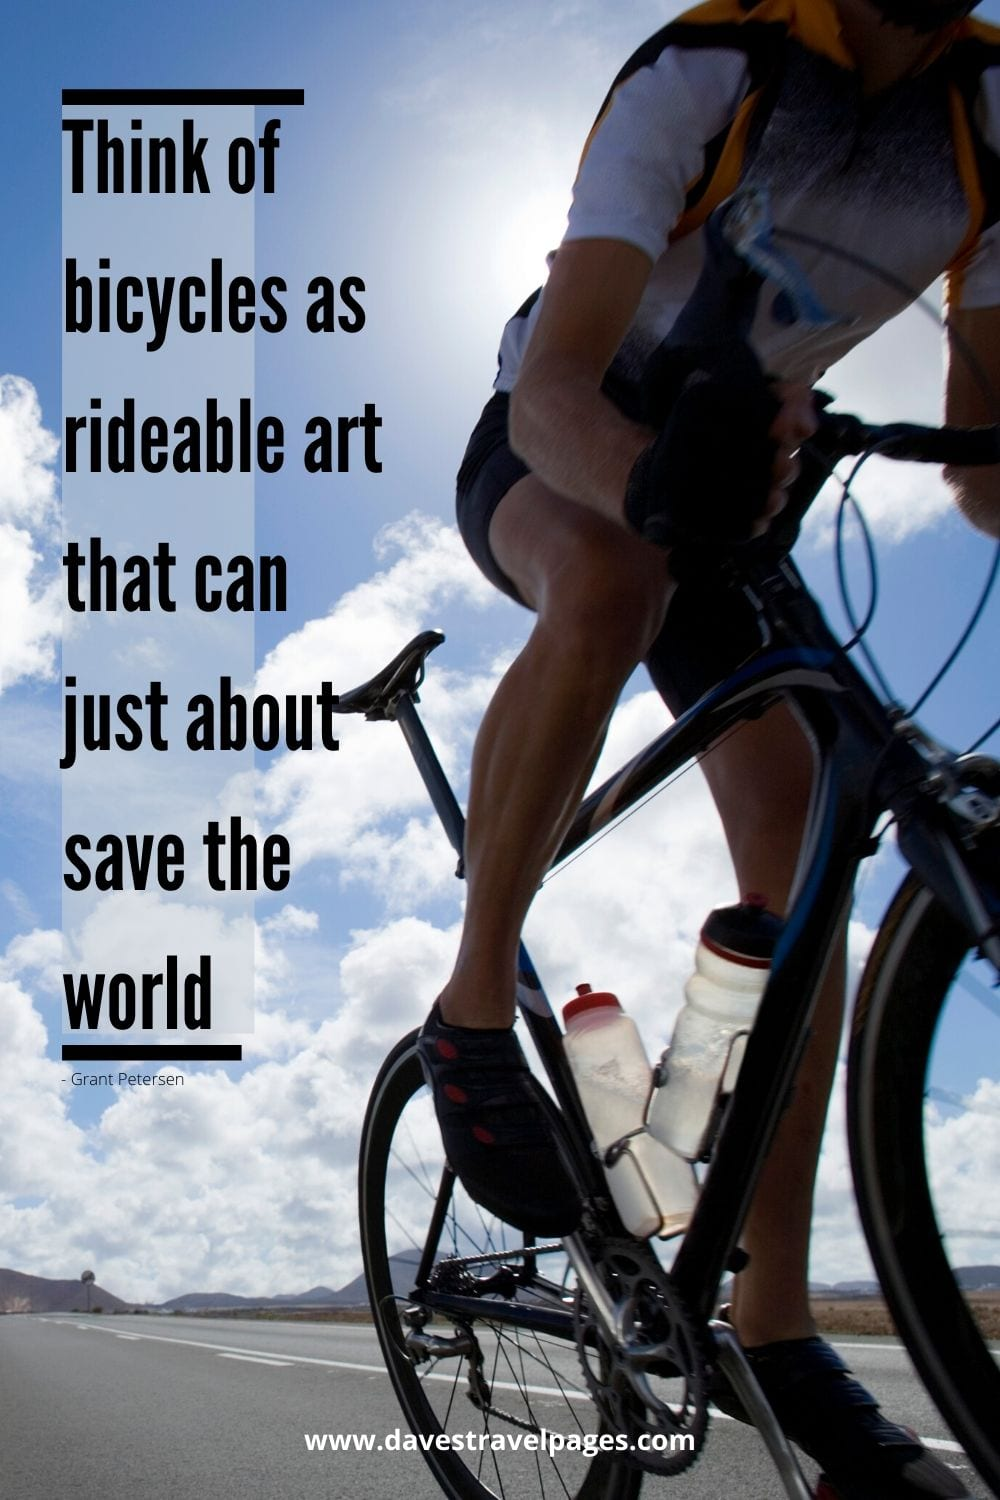 Quotes about bikes - Think of bicycles as rideable art that can just about save the world. ~ Grant Petersen